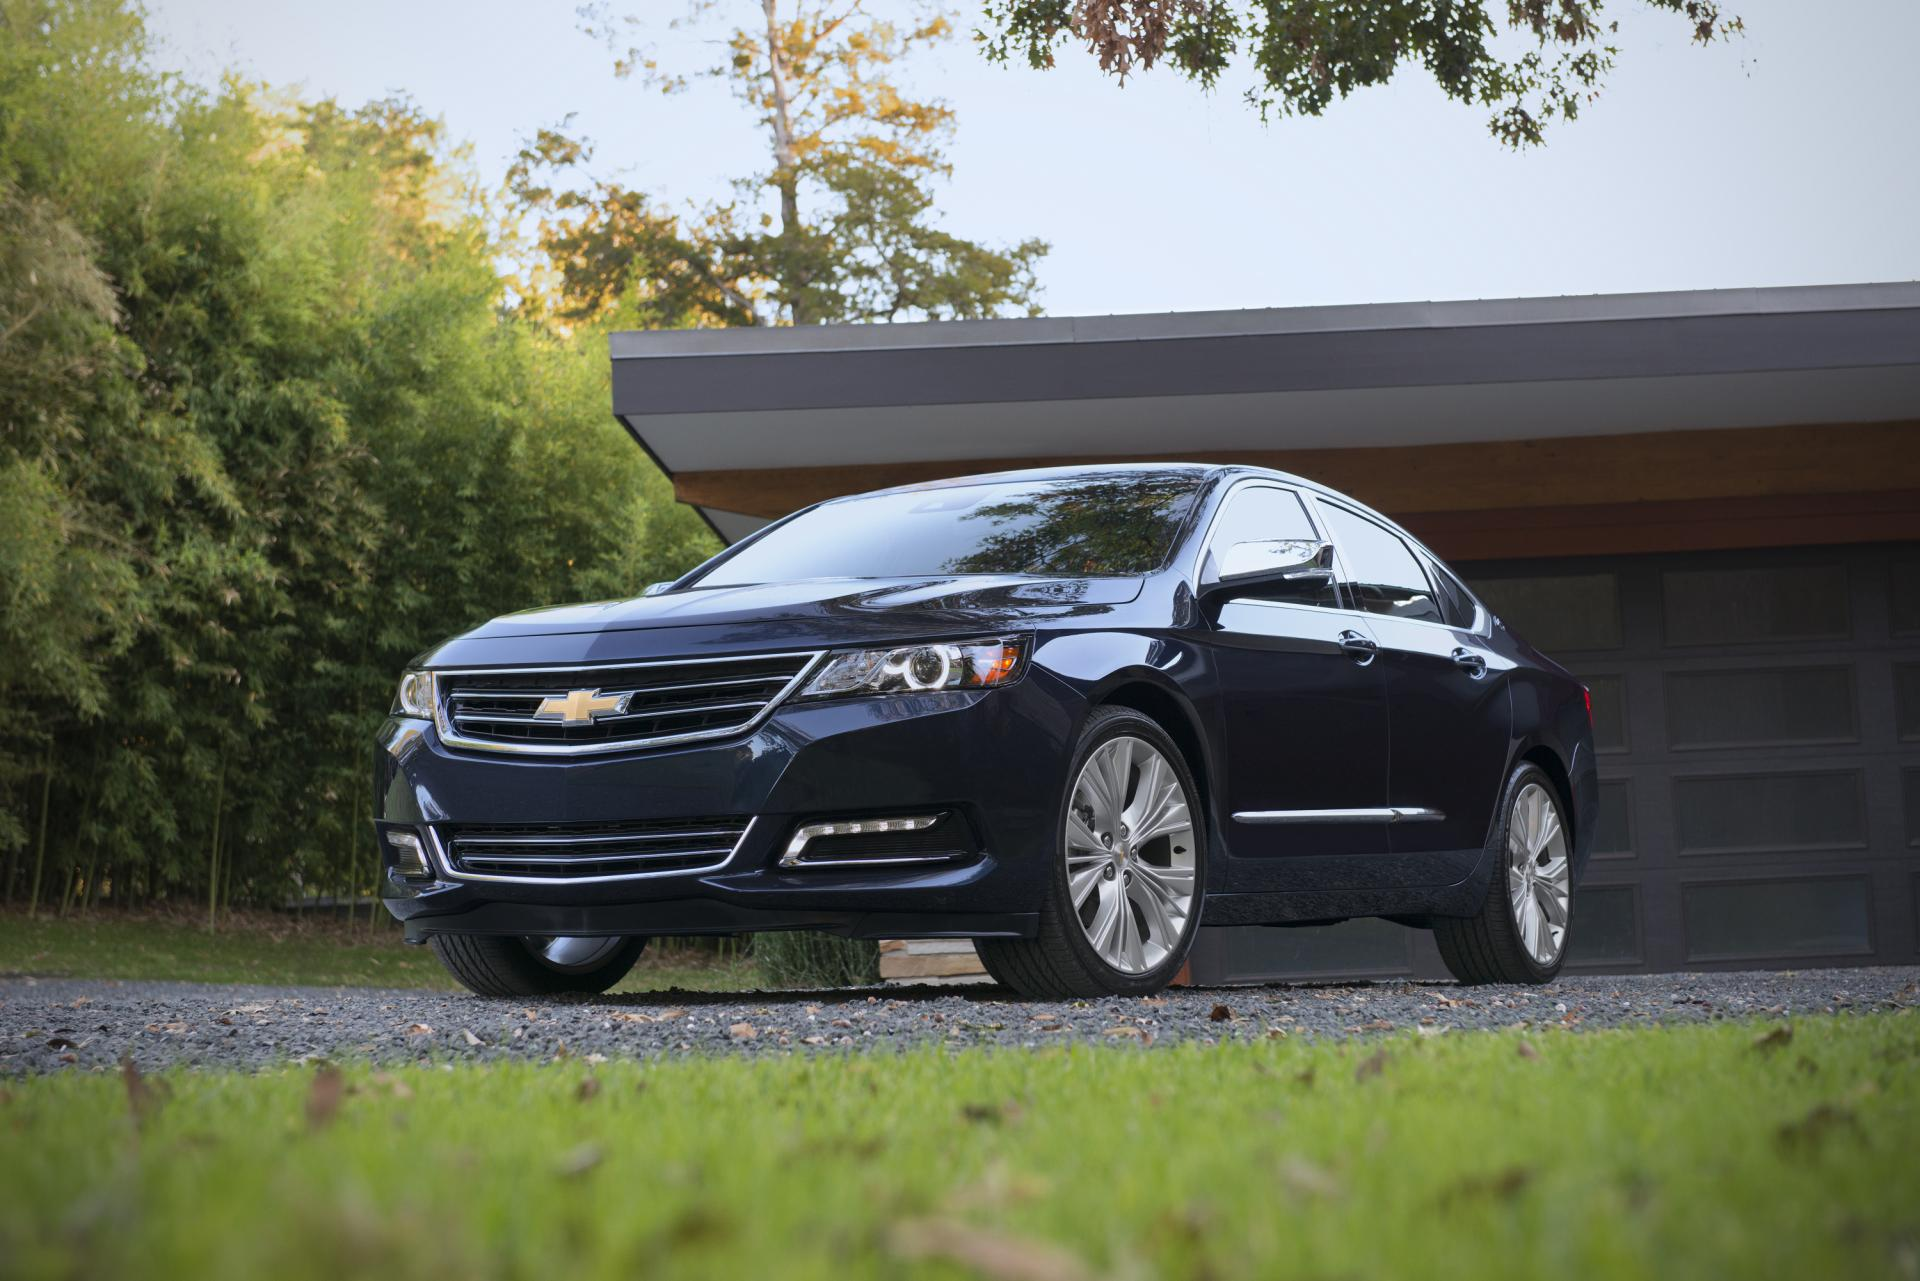 Sedan Vs Coupe >> 2015 Chevrolet Impala News and Information - conceptcarz.com